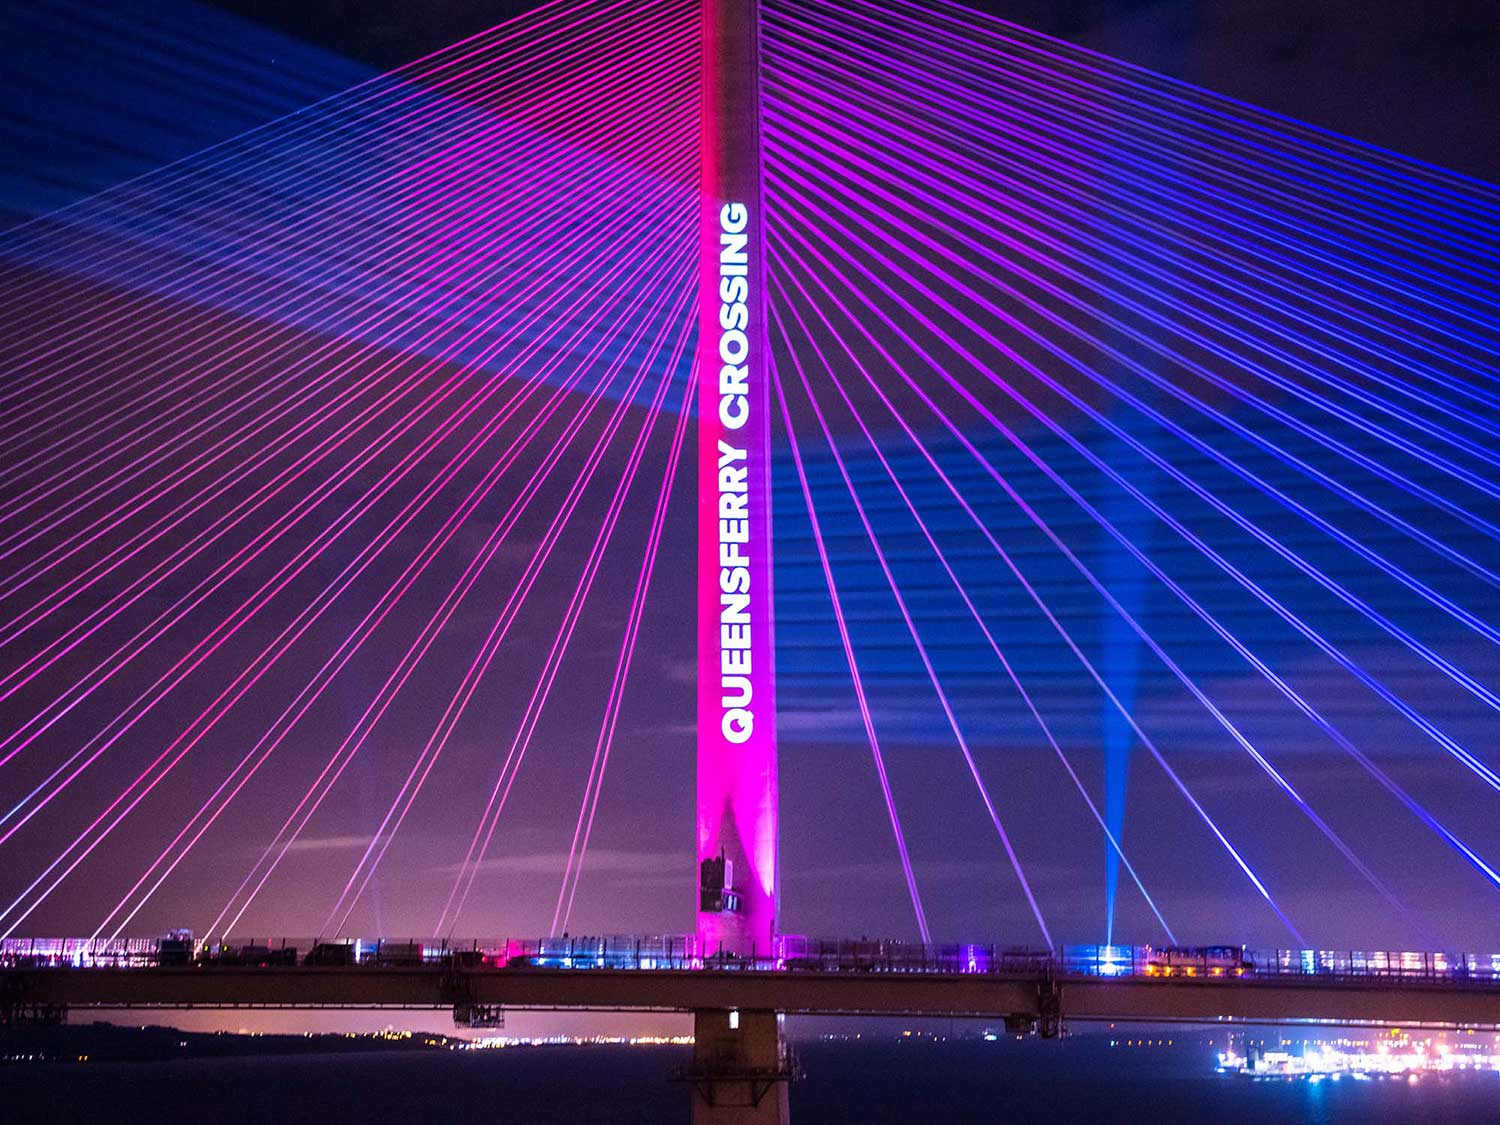 Queensferry Crossing Launch Projection, bridge spire VJing